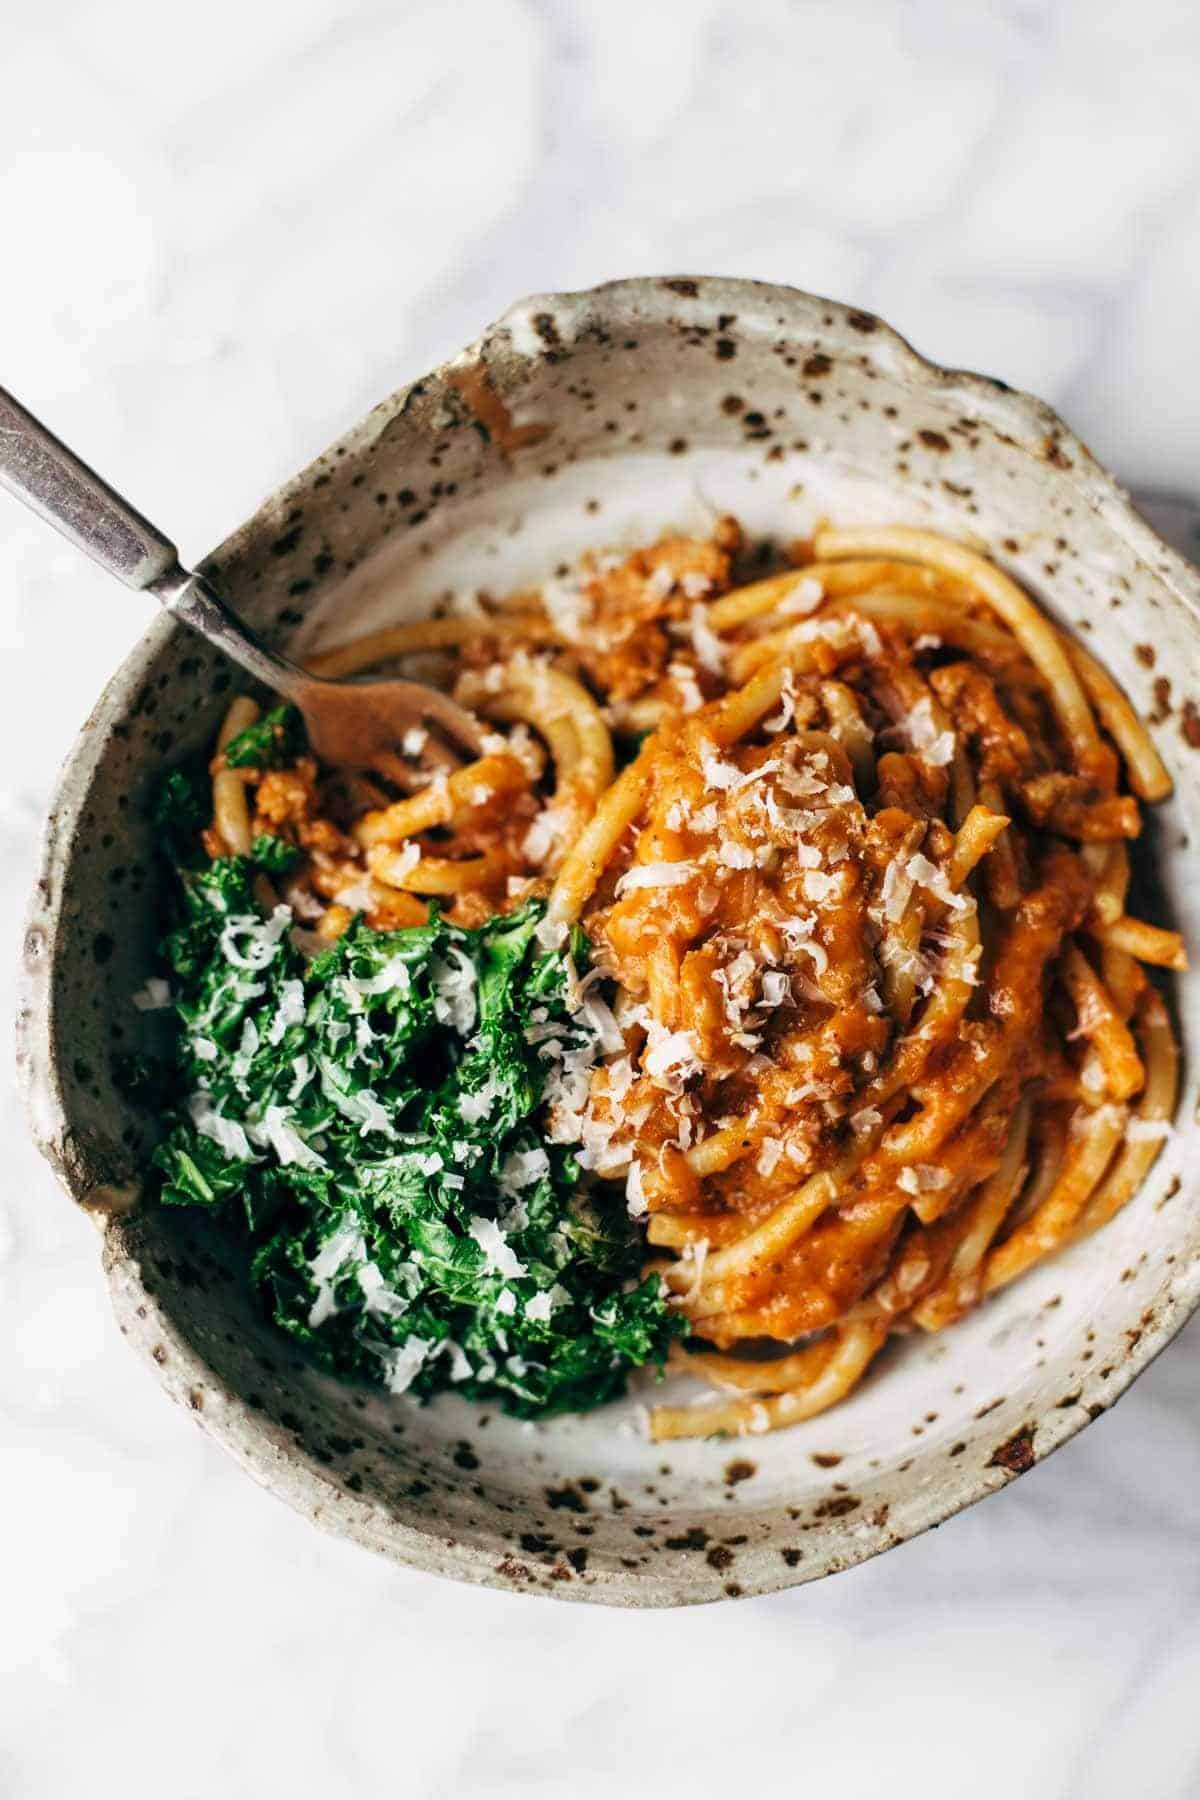 Creamy Pumpkin Spaghetti with Garlic Kale - this is a crazy good combination! Spicy turkey, creamy pumpkin sauce, and pasta - love this recipe! | pinchofyum.com